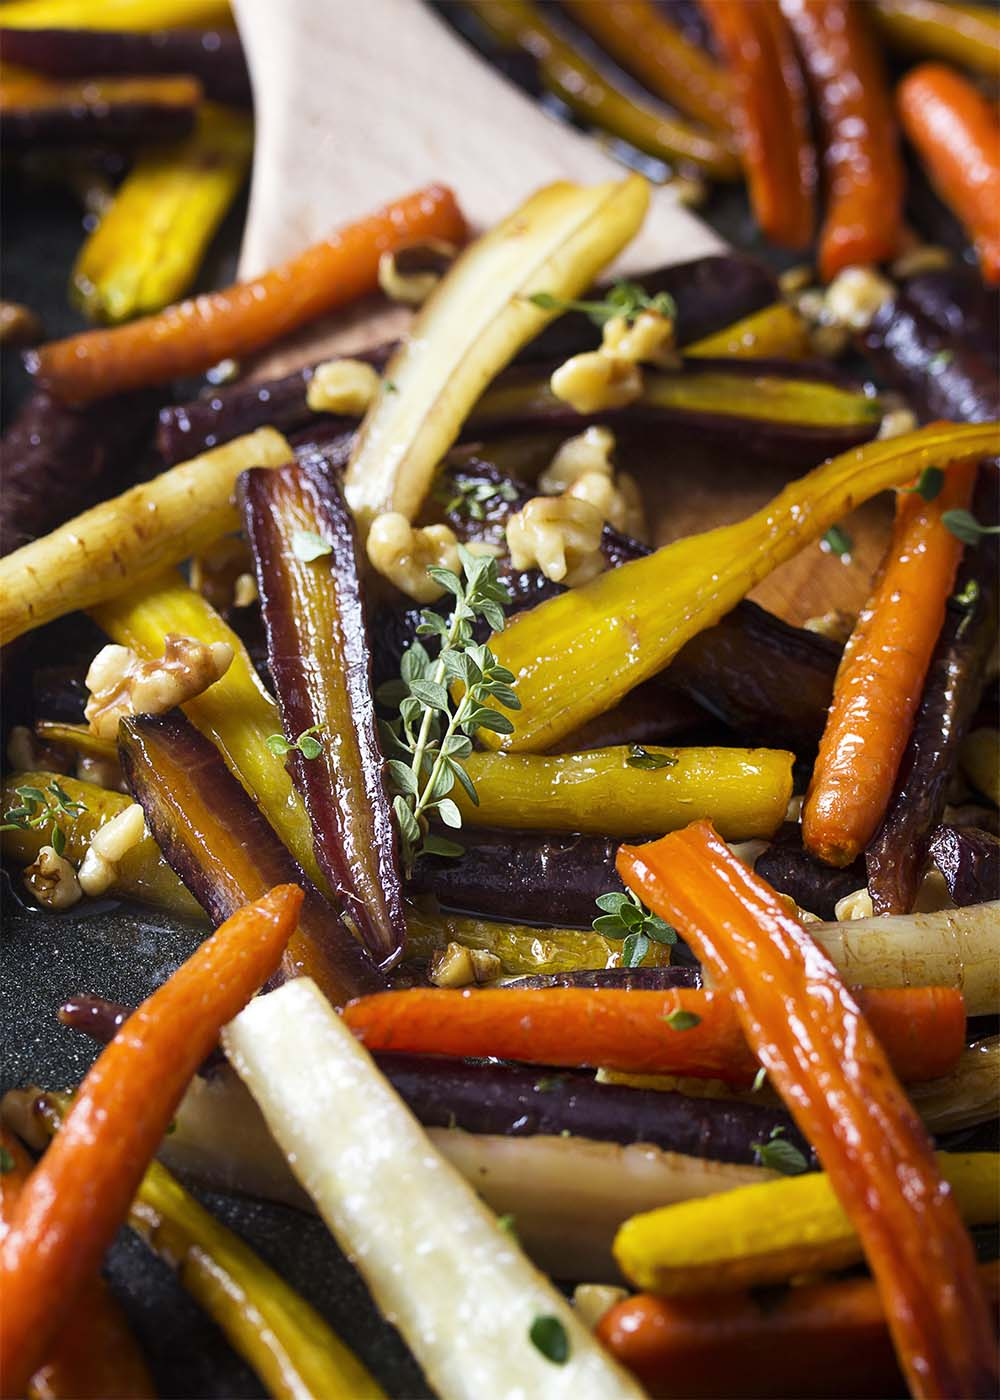 A roasting pan of roasted carrots glazed with honey and tossed with thyme, walnuts, and balsamic.